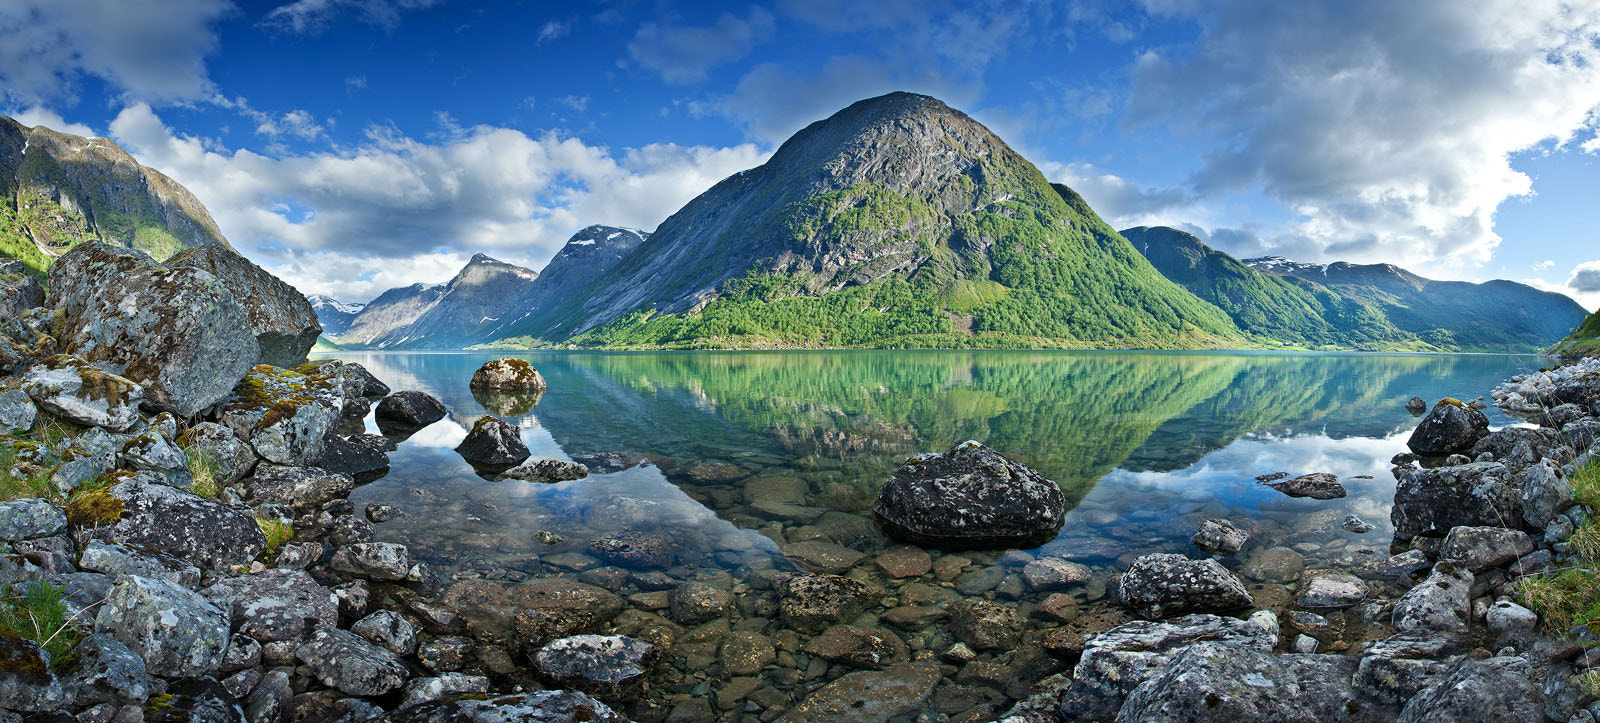 Photograph Fjærland by Natalia Eriksson on 500px